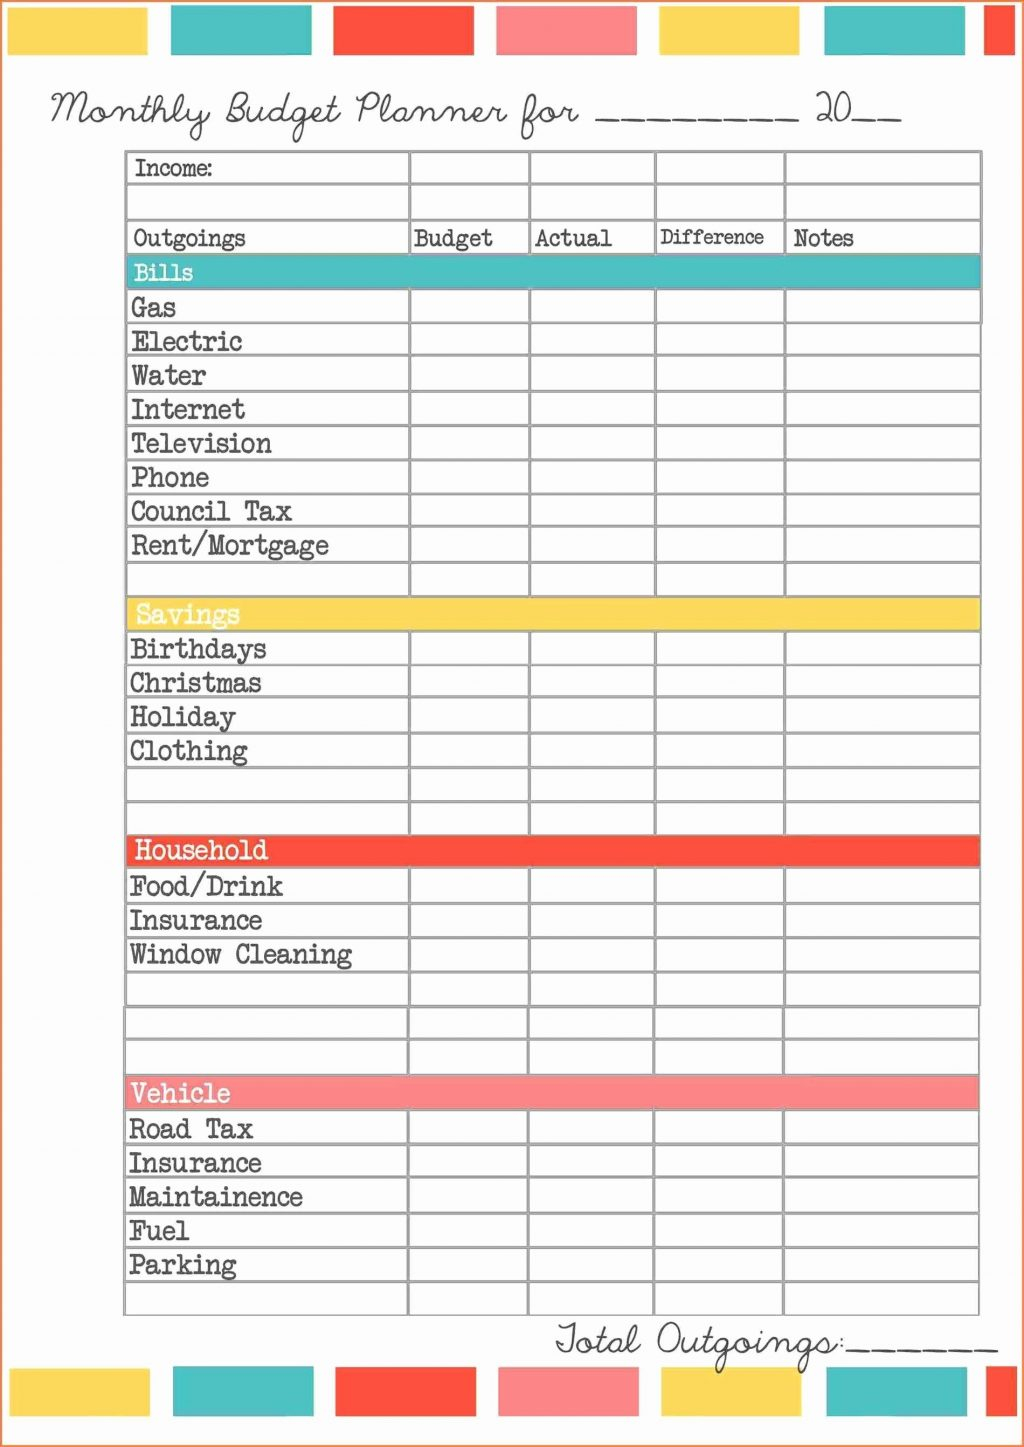 Free Accounting Spreadsheet Templates For Small Business Xls With Regard To Small Business Accounting Spreadsheet Template Free